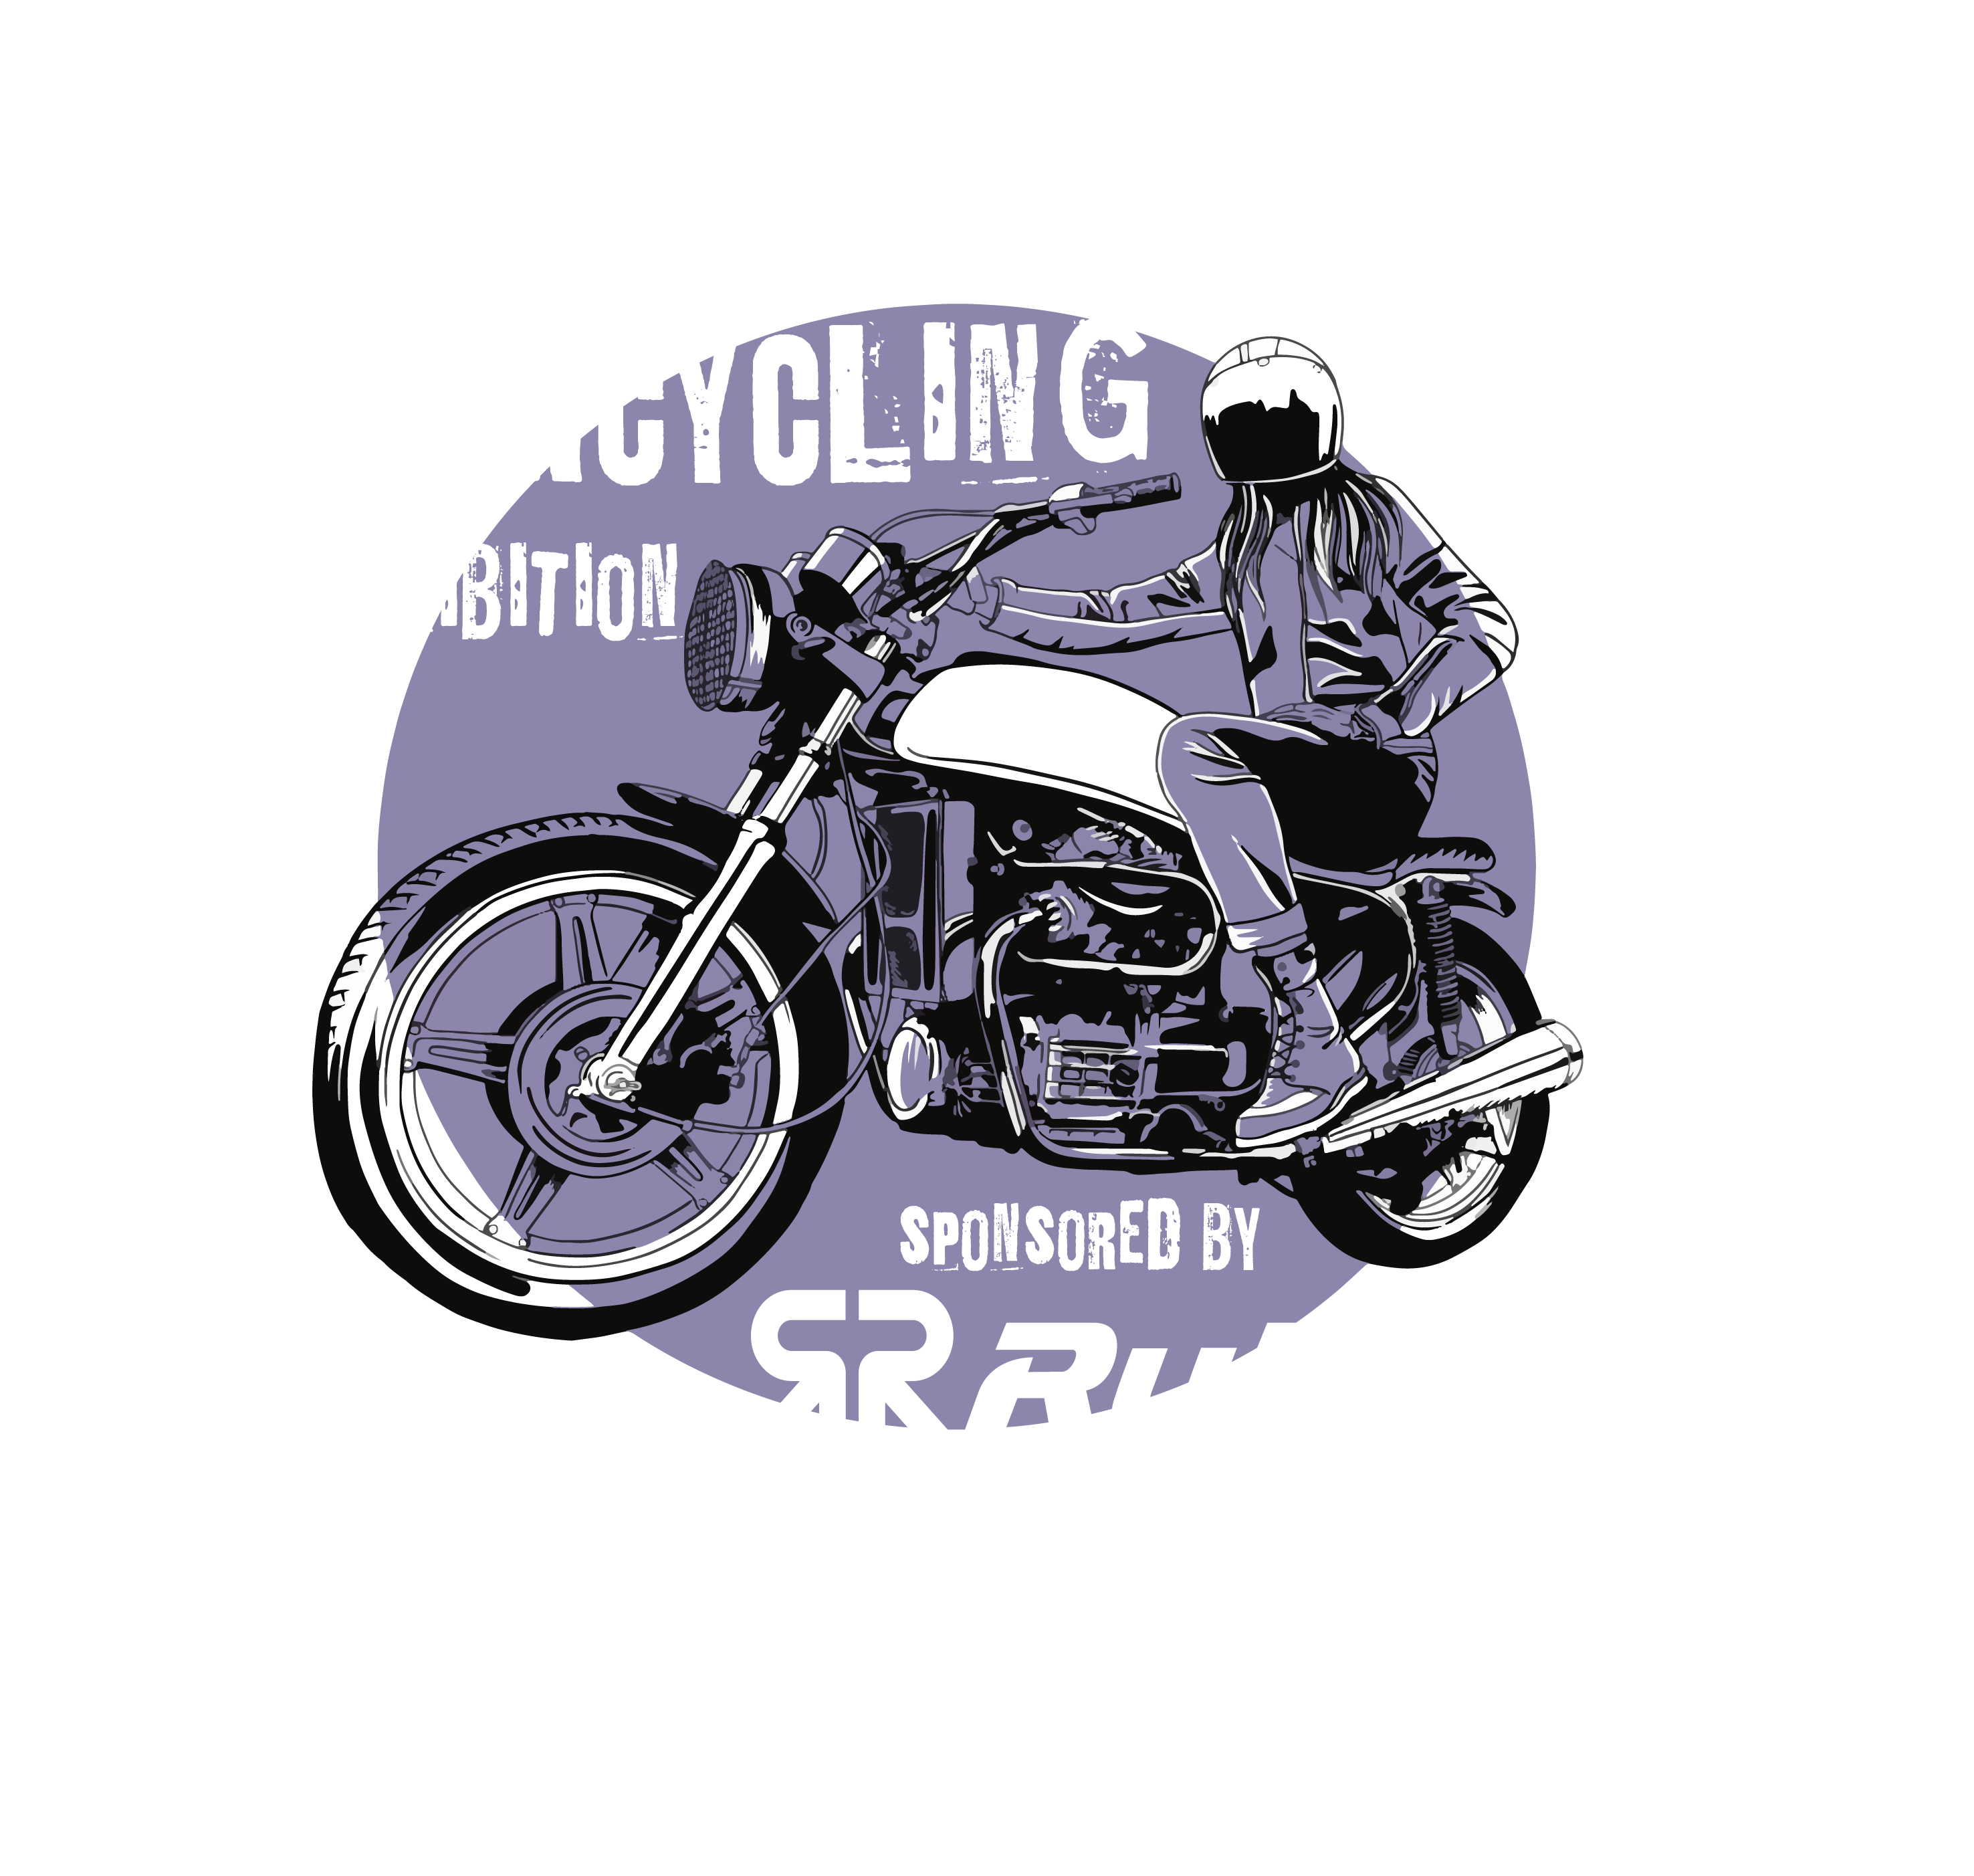 The Women in Motorcycling Exhibition